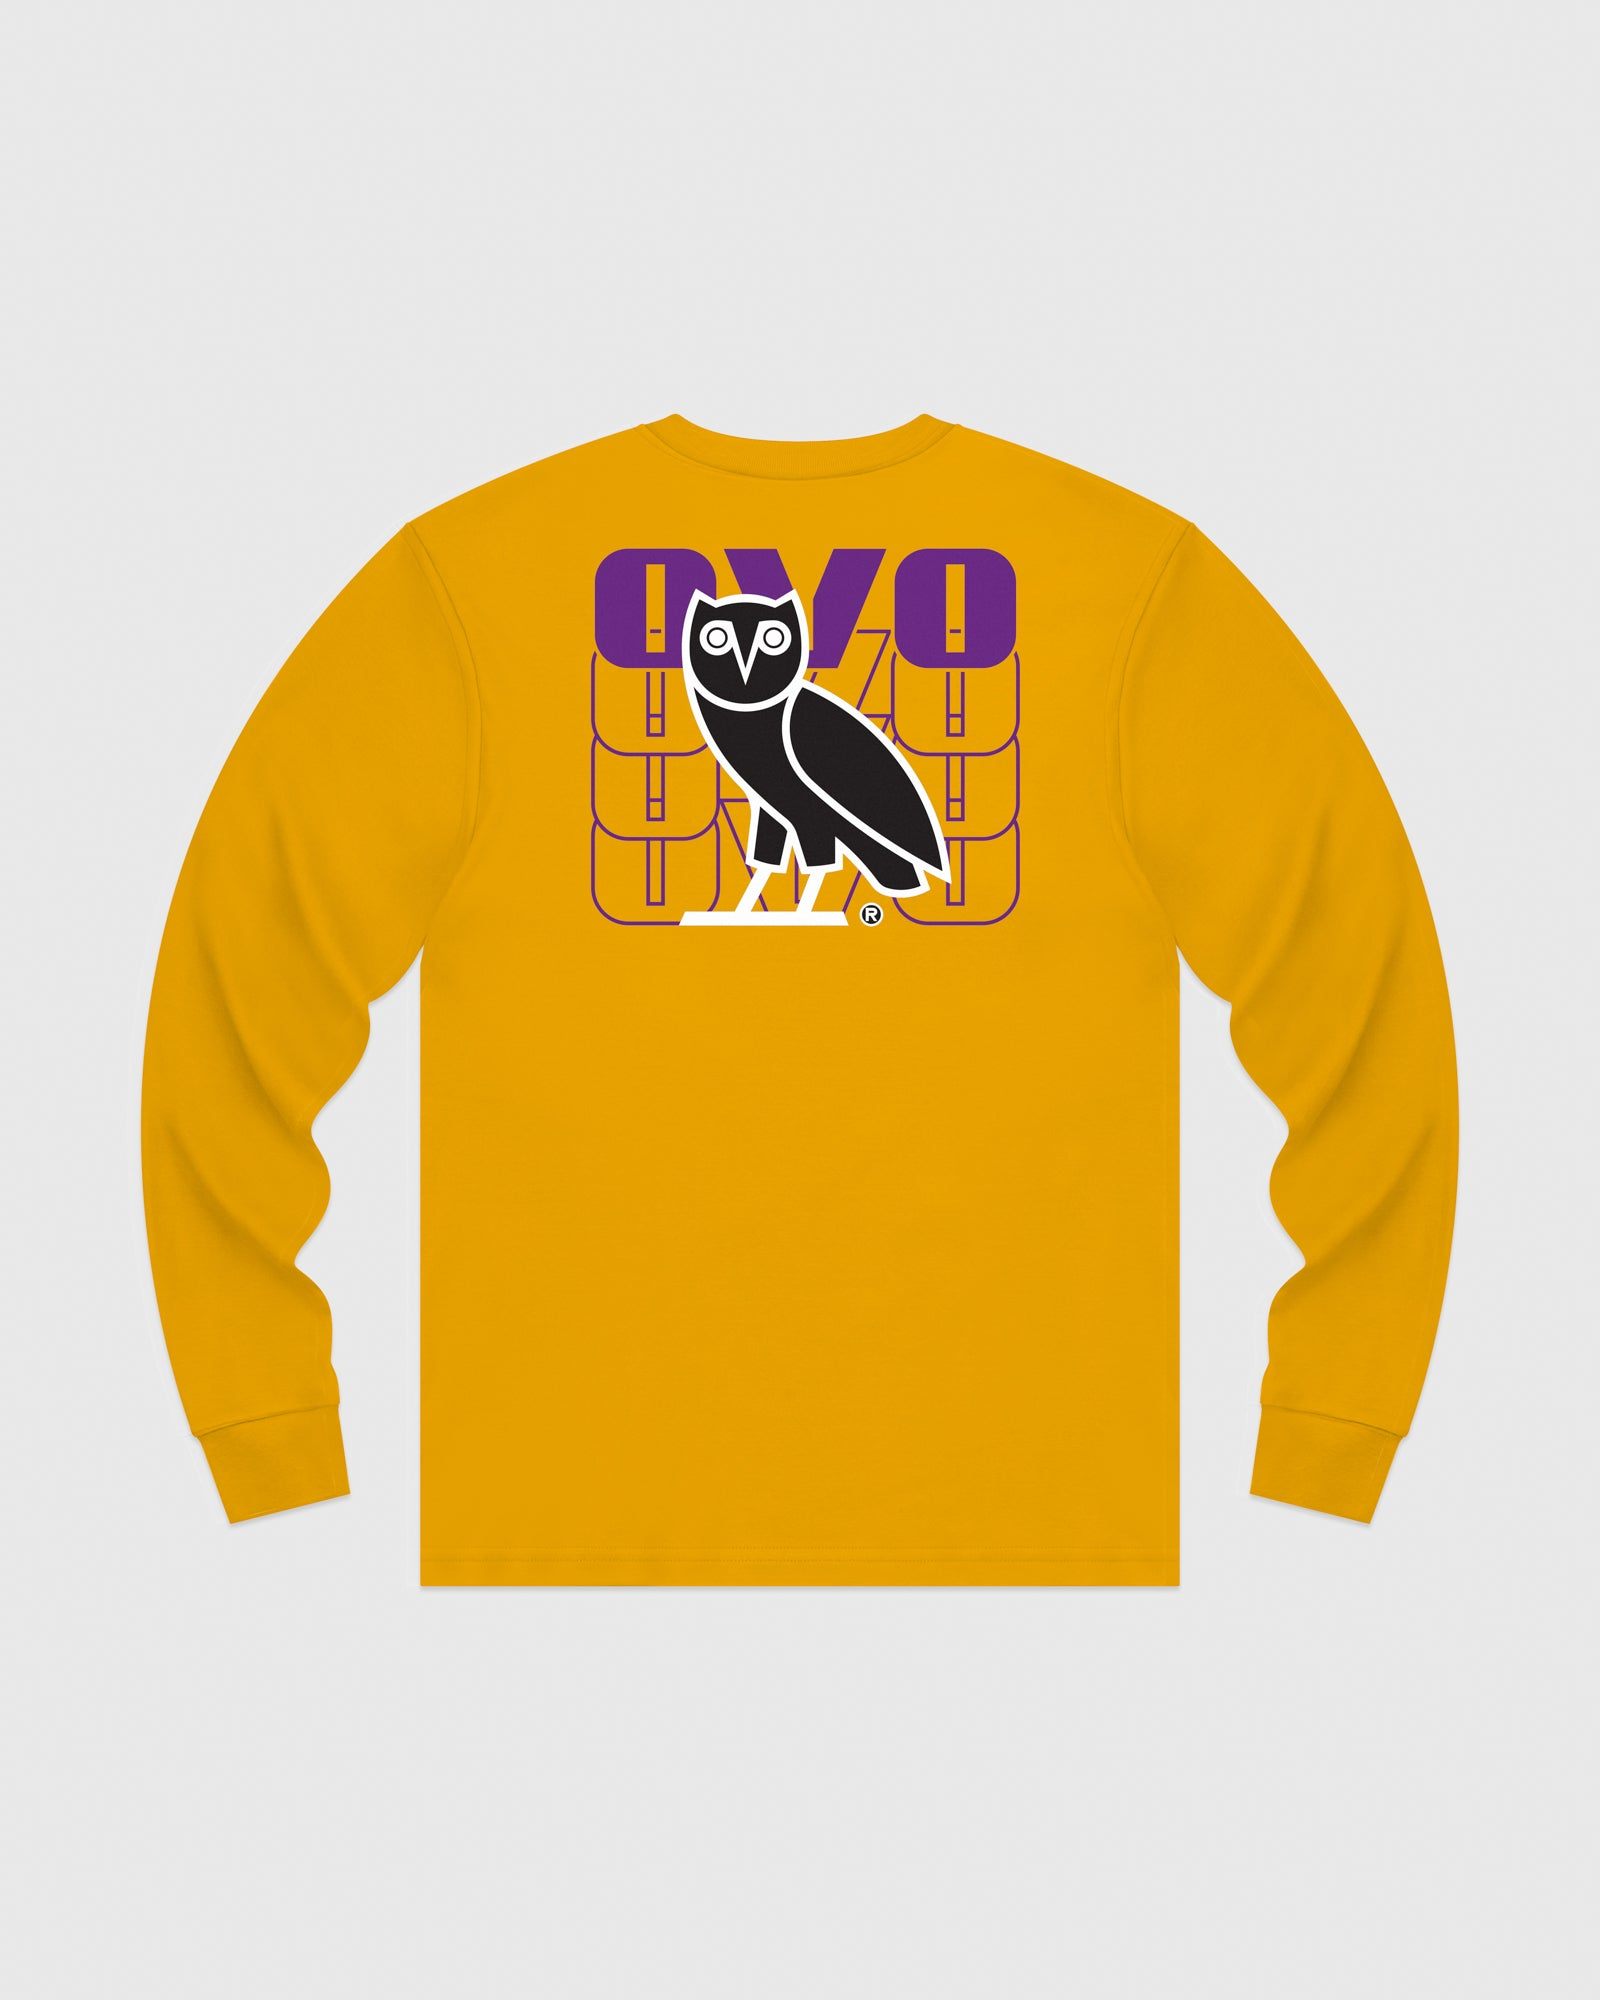 OVO ECHO LONGSLEEVE T-SHIRT - AUTUMN YELLOW IMAGE #5